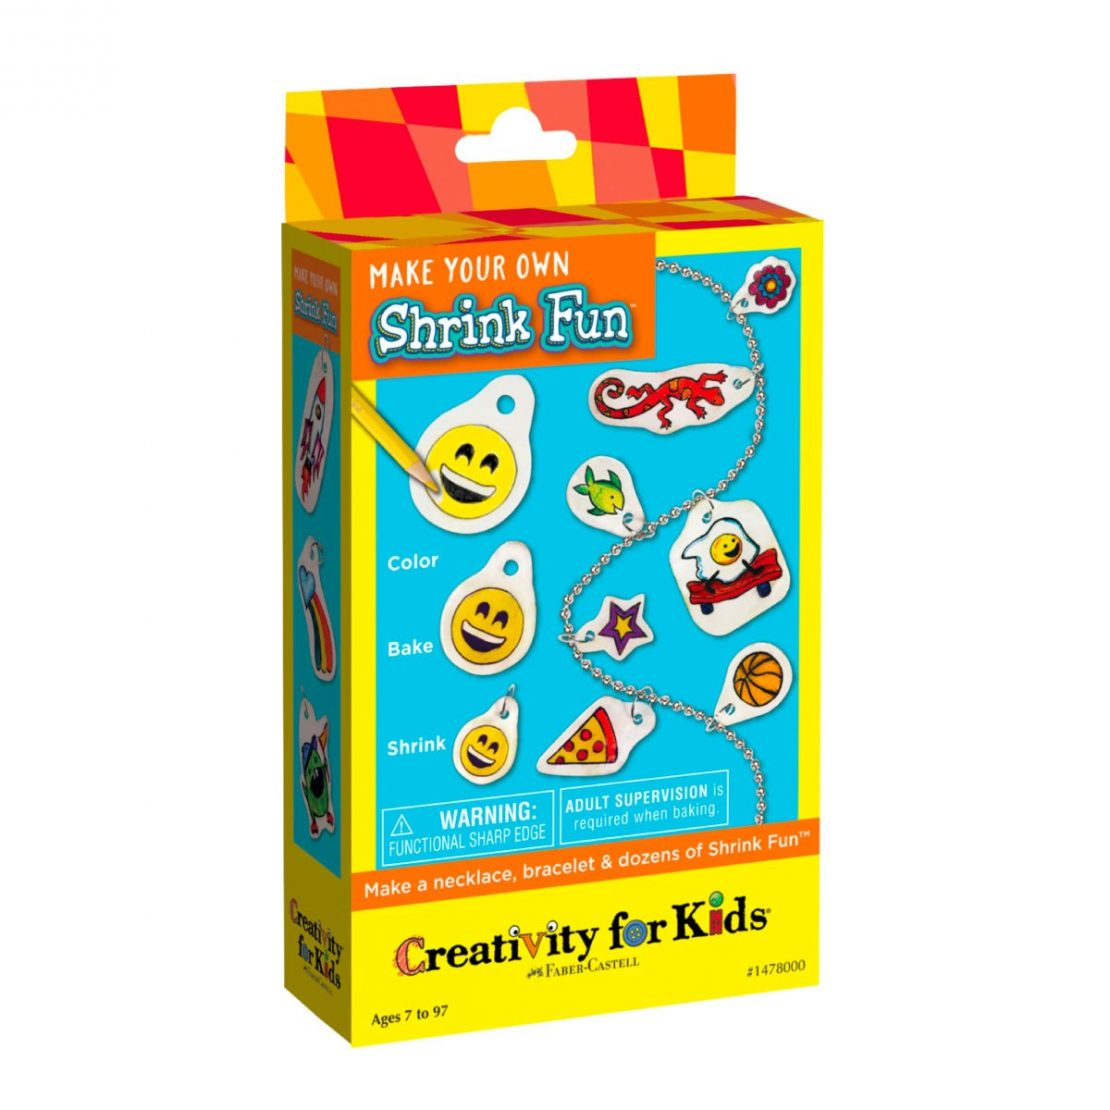 Make Your Own Shrink Fun from Creativity for Kids